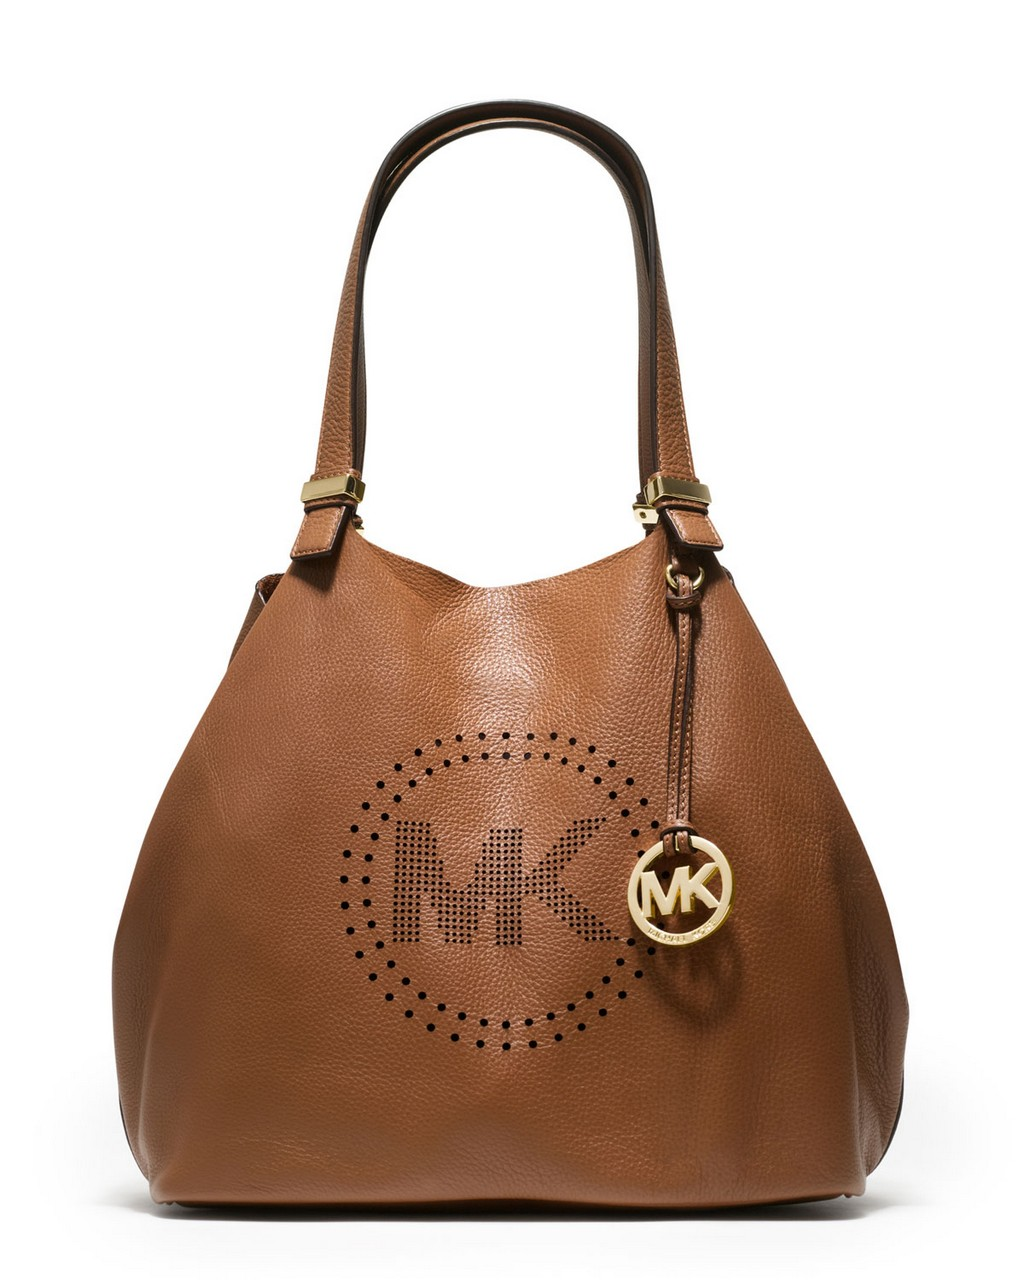 Stylish Handbags Designer Handbags For Women Michael Kors